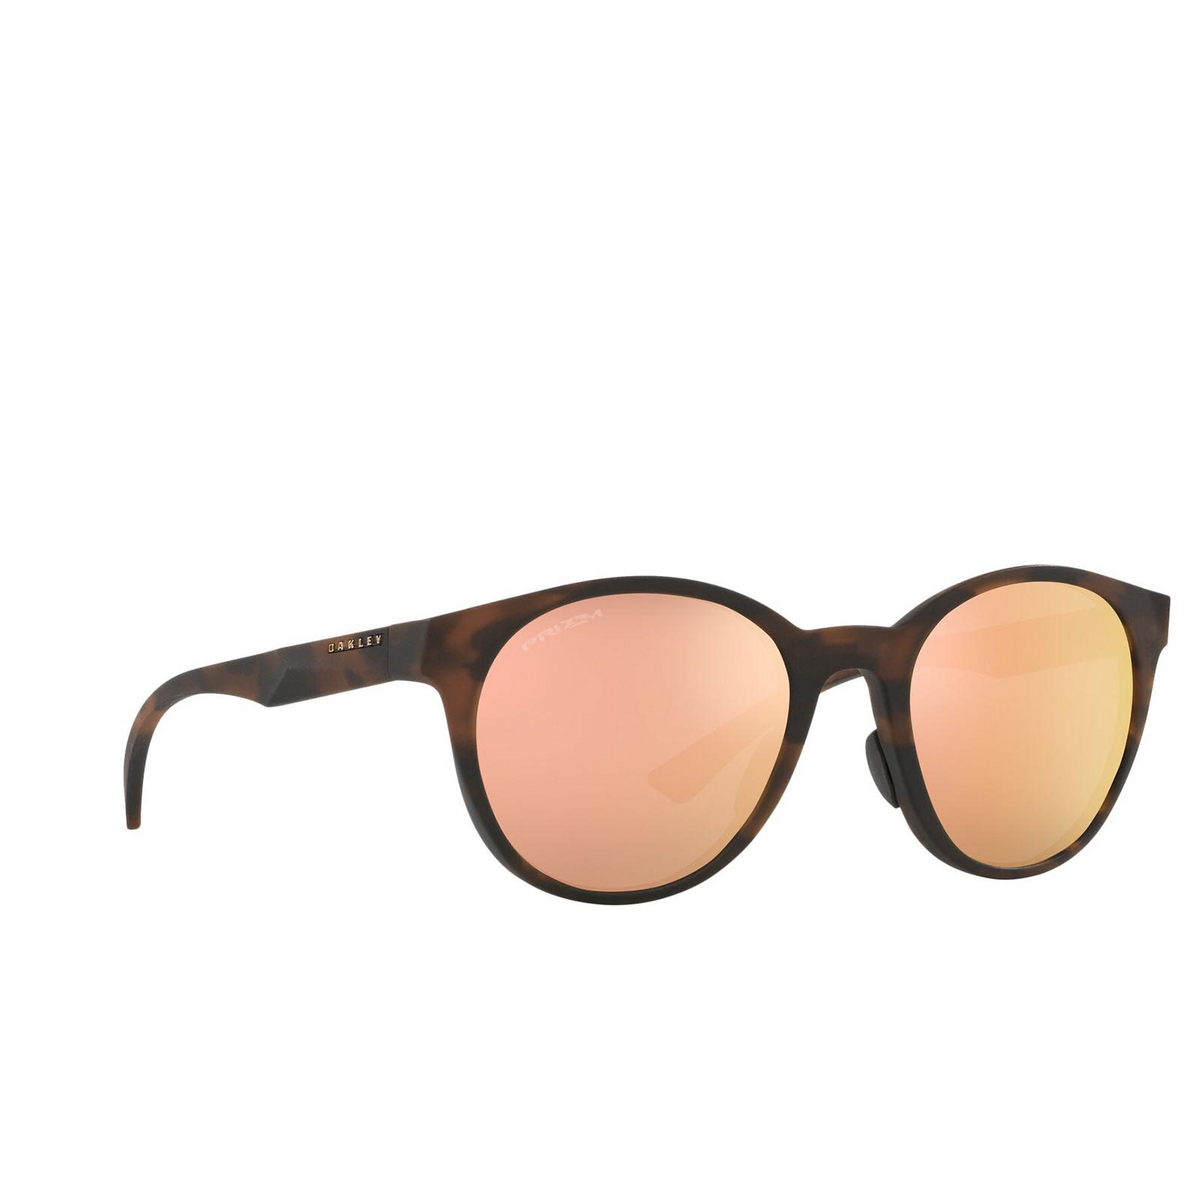 Oakley® Round Sunglasses: Spindrift OO9474 color Matte Brown Tortoise 947401 - three-quarters view.